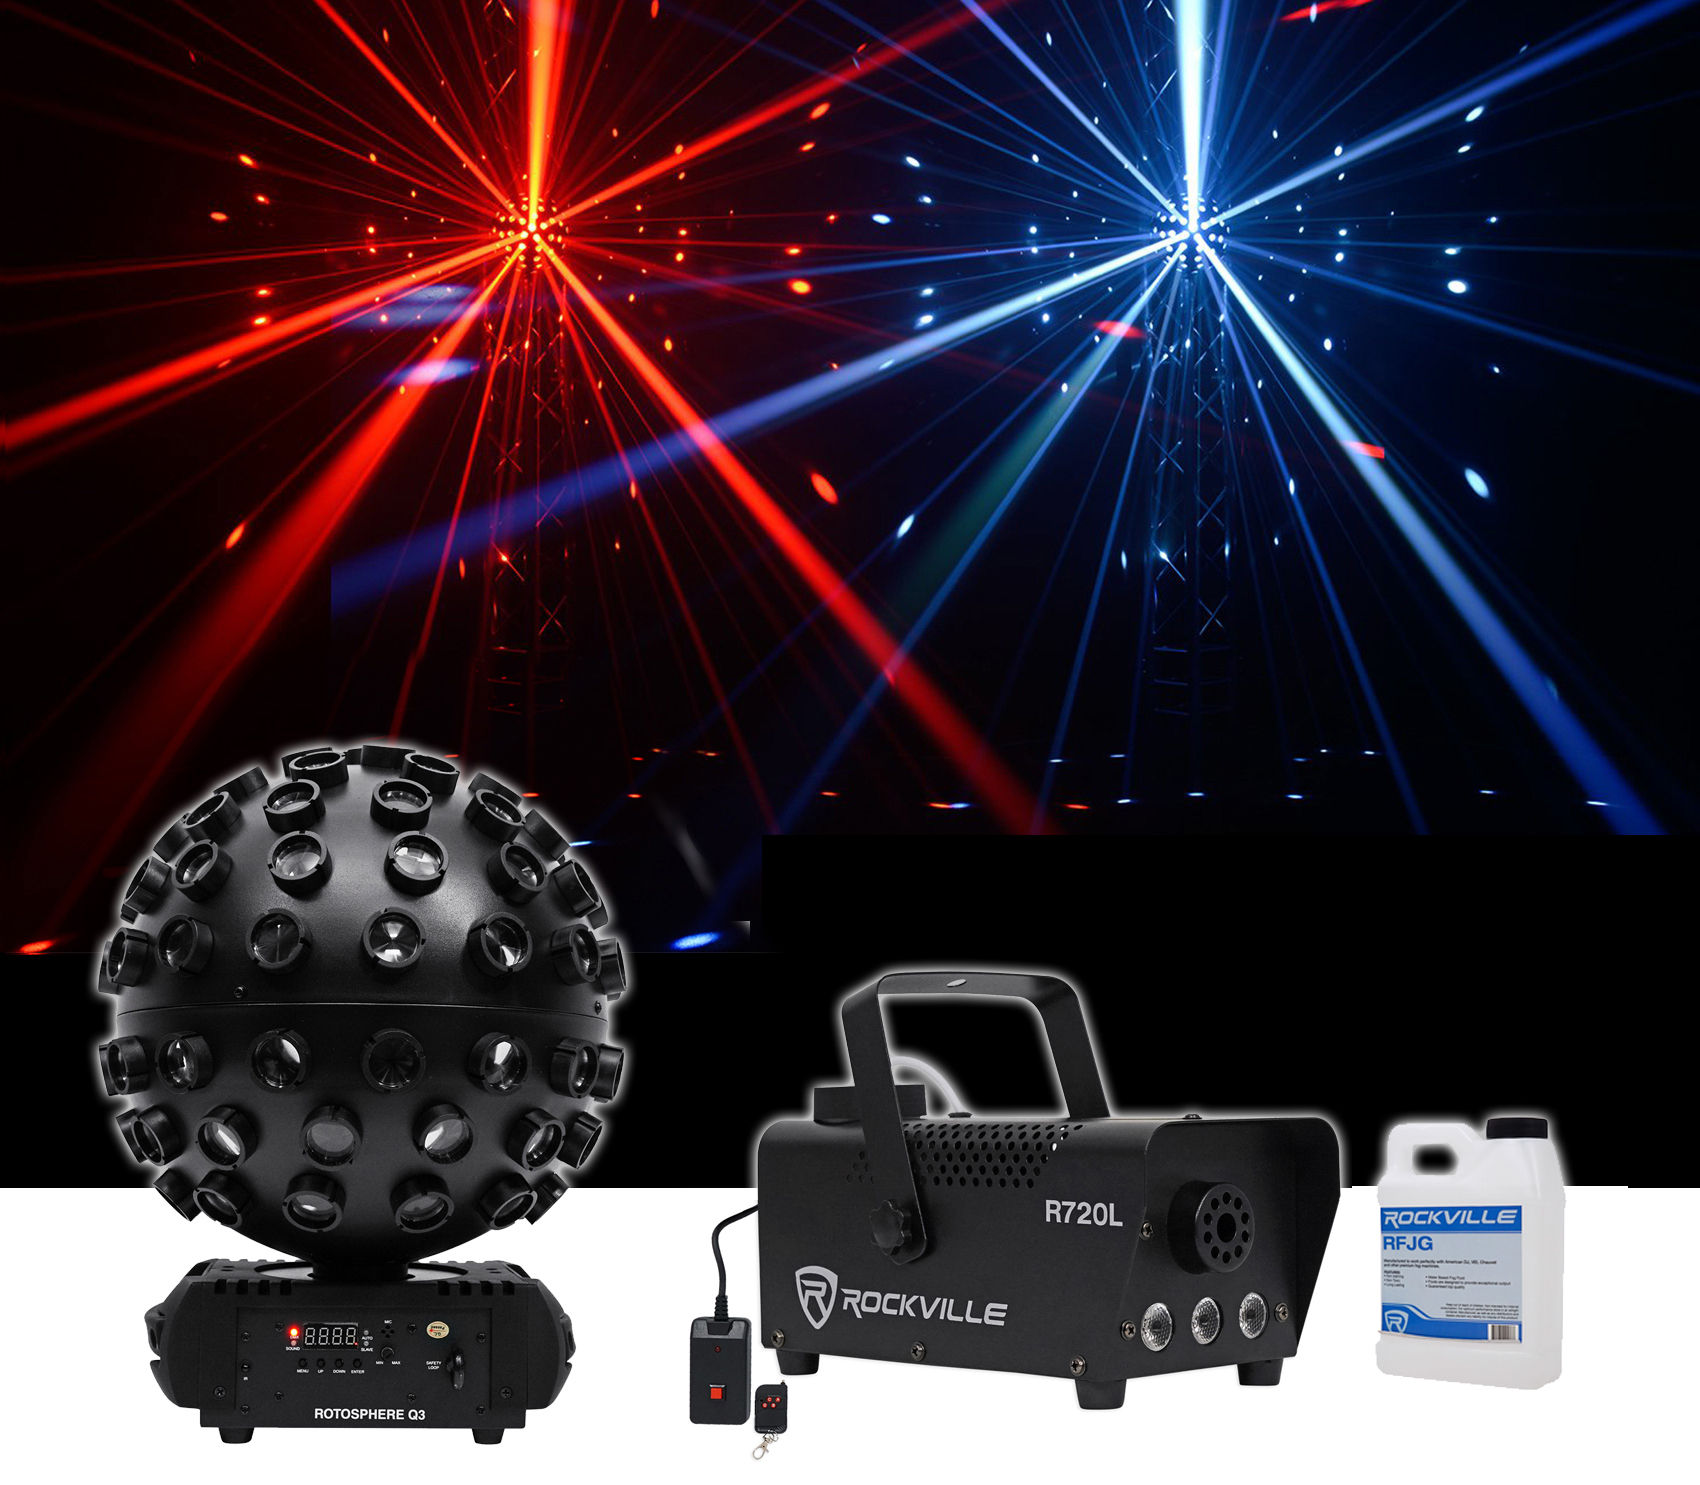 Click here to buy Chauvet DJ Rotosphere Q3 Mirror Ball Dance Floor LED Effect Light + Fog Machine.